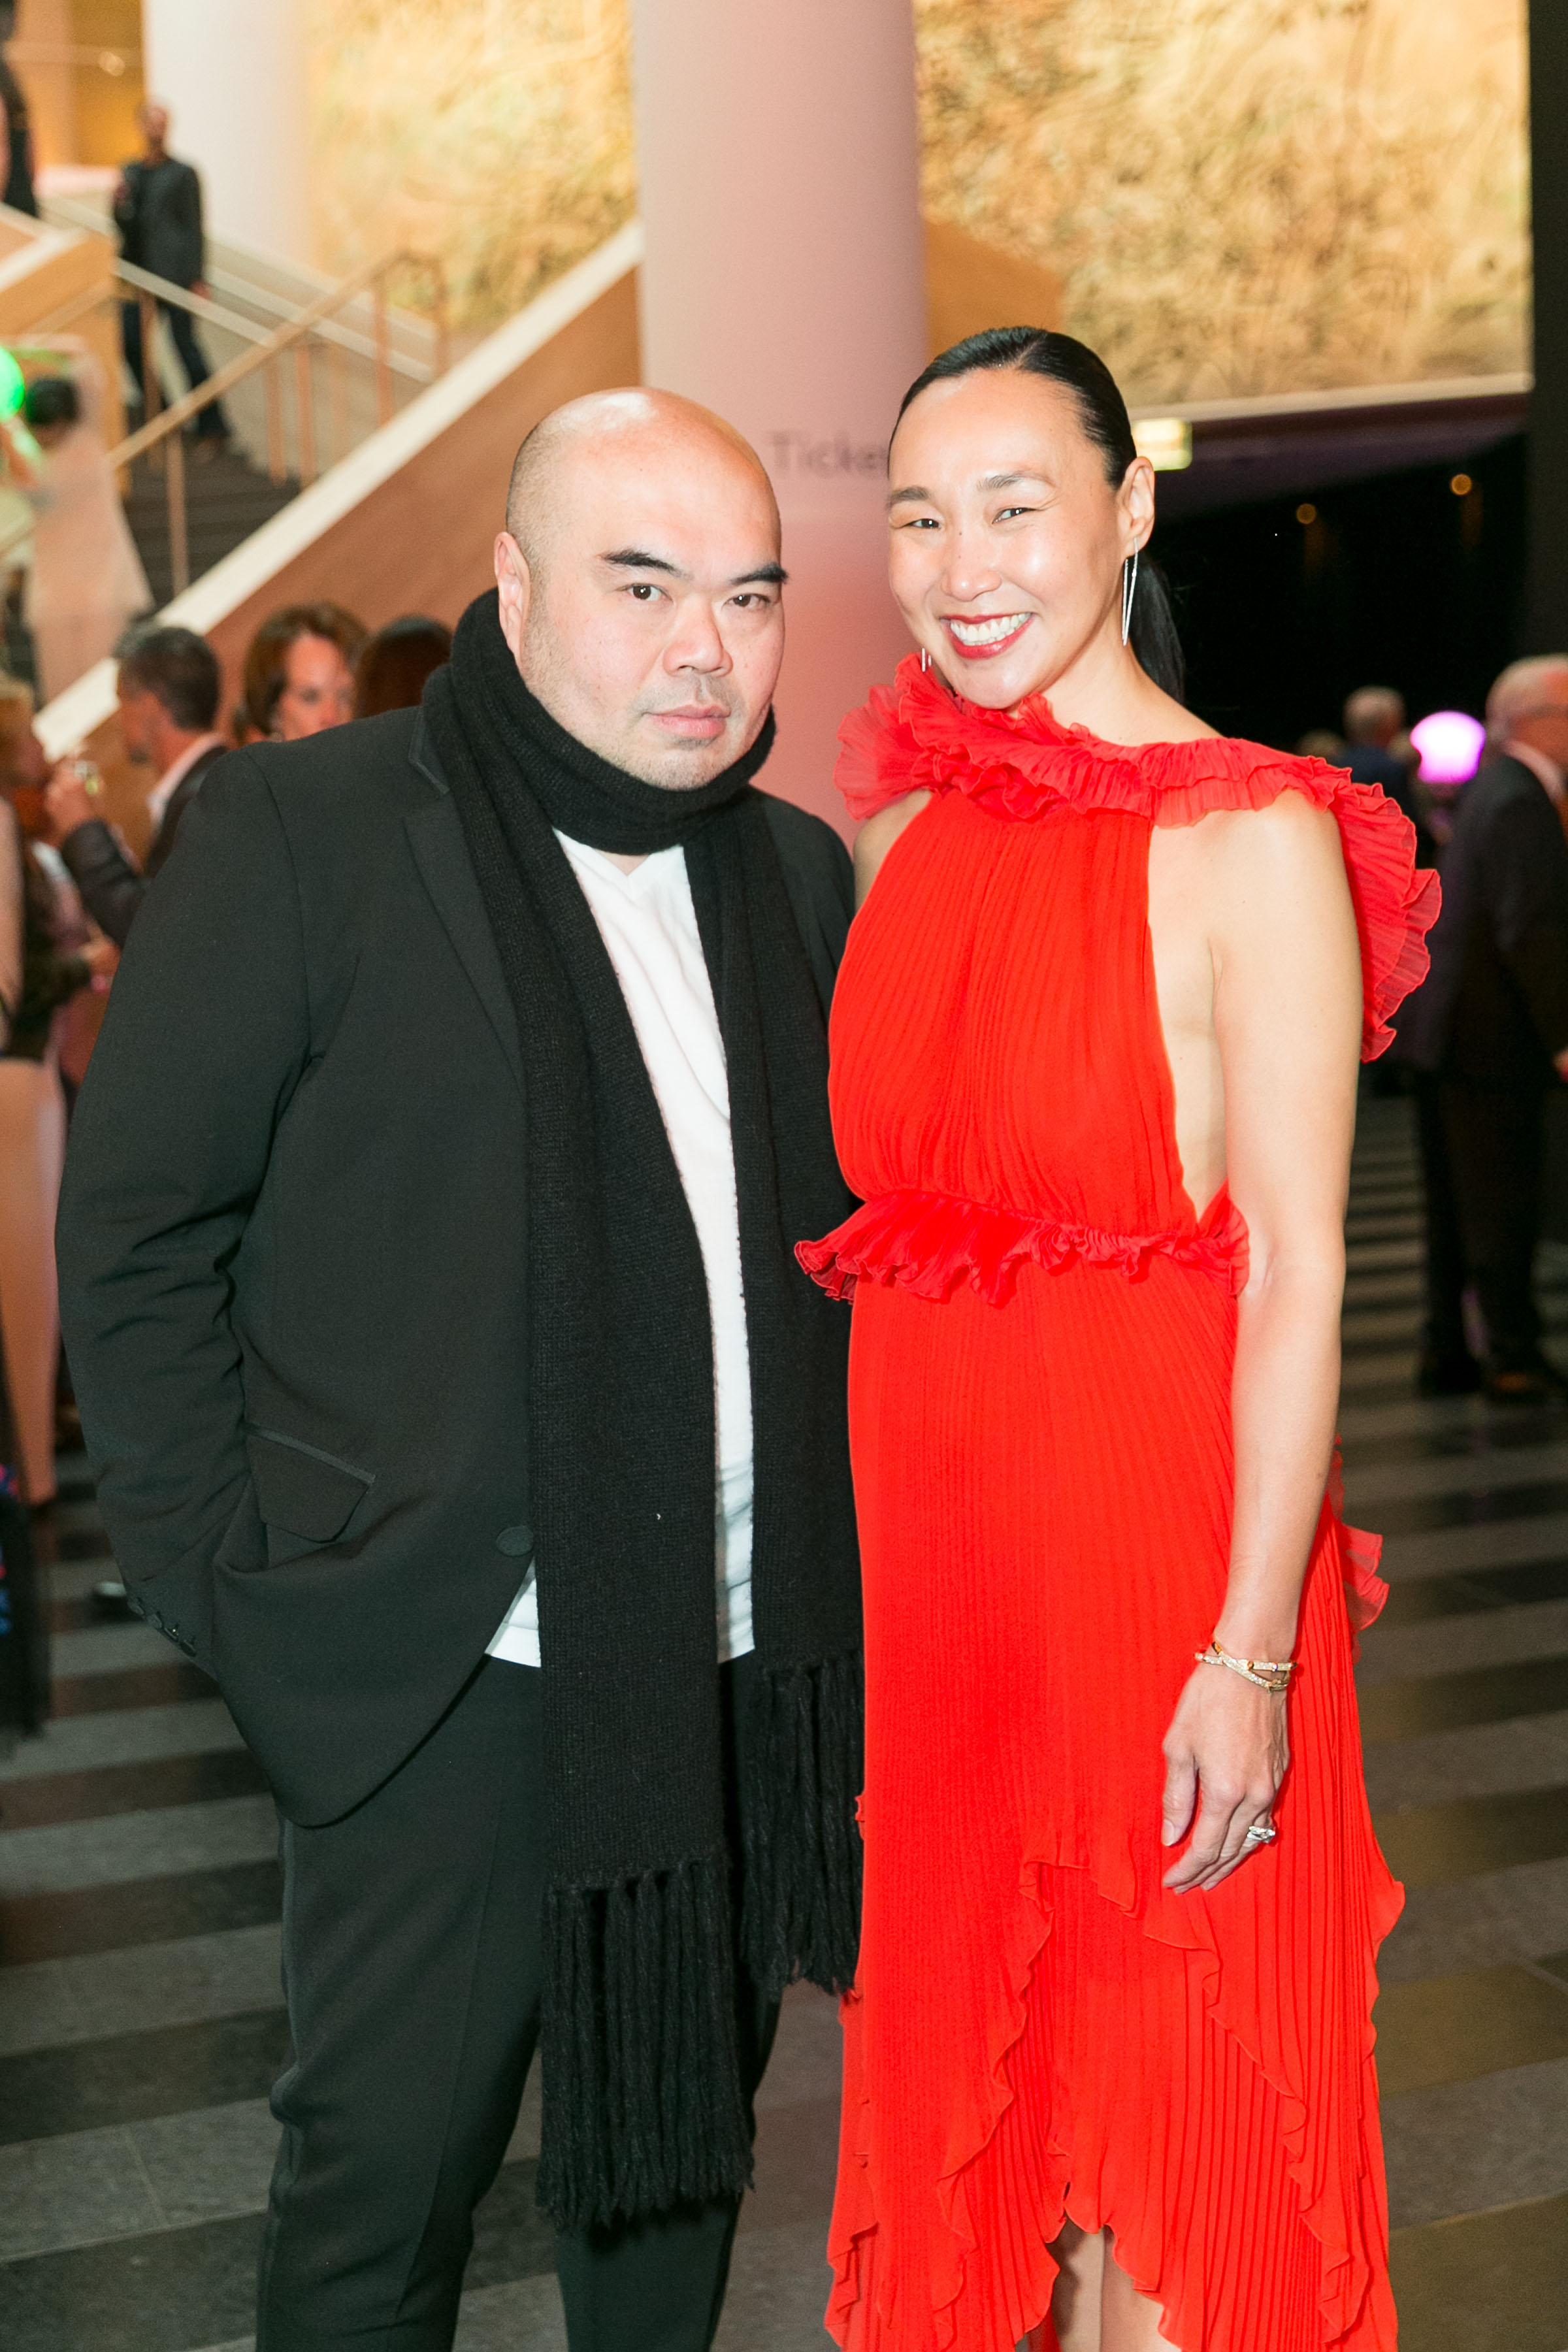 Andrew Gn and Carolyn Chang attend SFMOMA Modern Ball 2018 on April 25th 2018 at SFMOMA in San Francisco, CA (Photo - Jessica Monroy for Drew Altizer Photography)